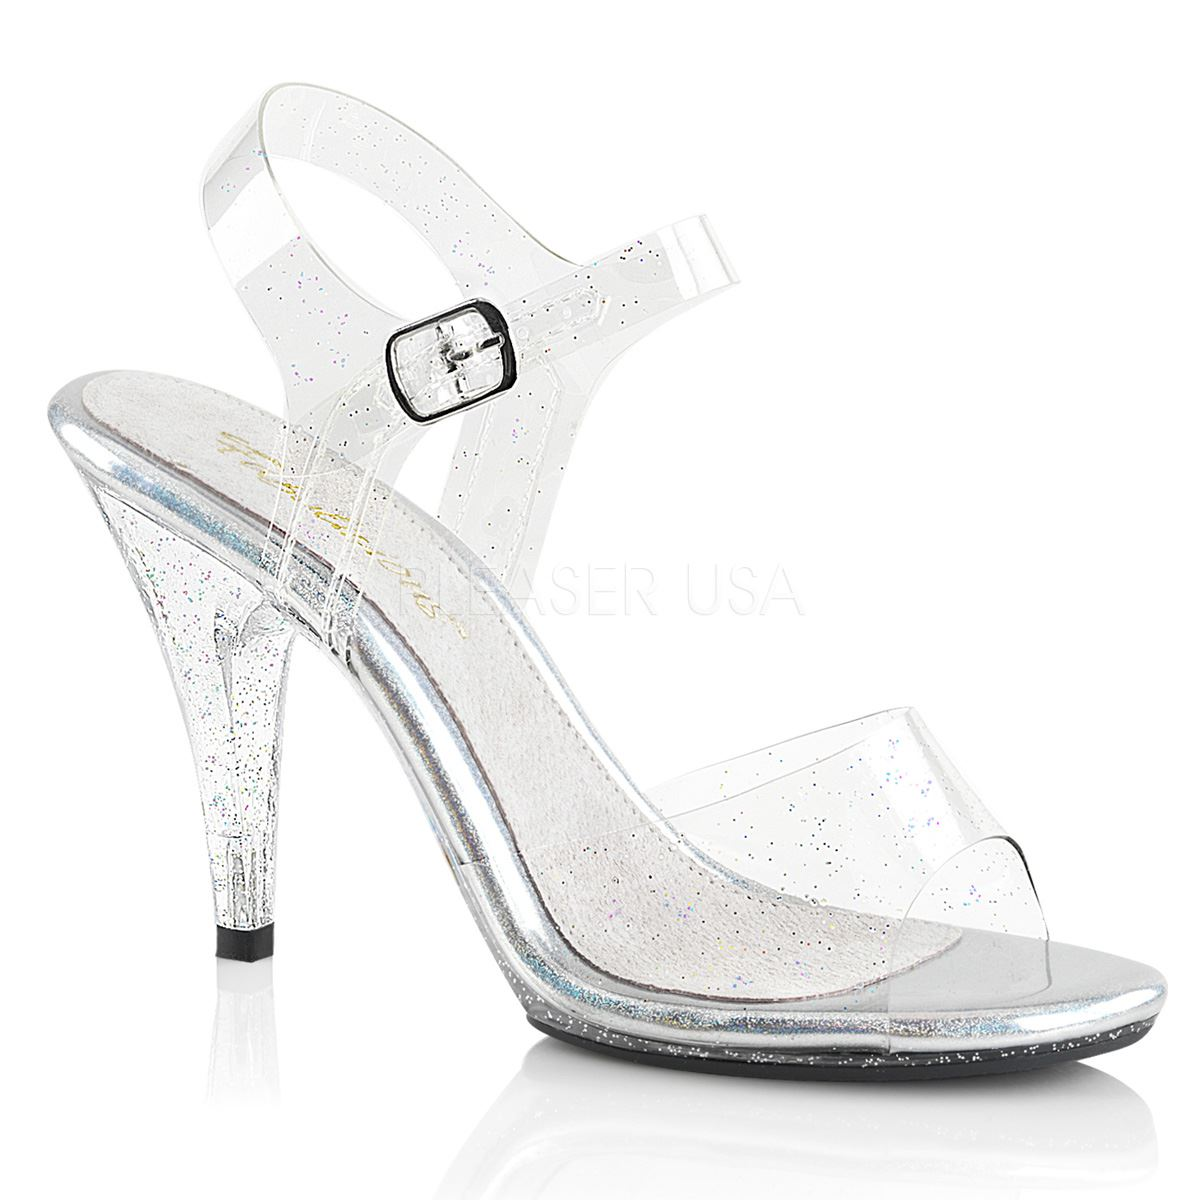 Fabulicious CARESS-408MMG Platform Ankle Strap Sandal Women's Clear/Clear